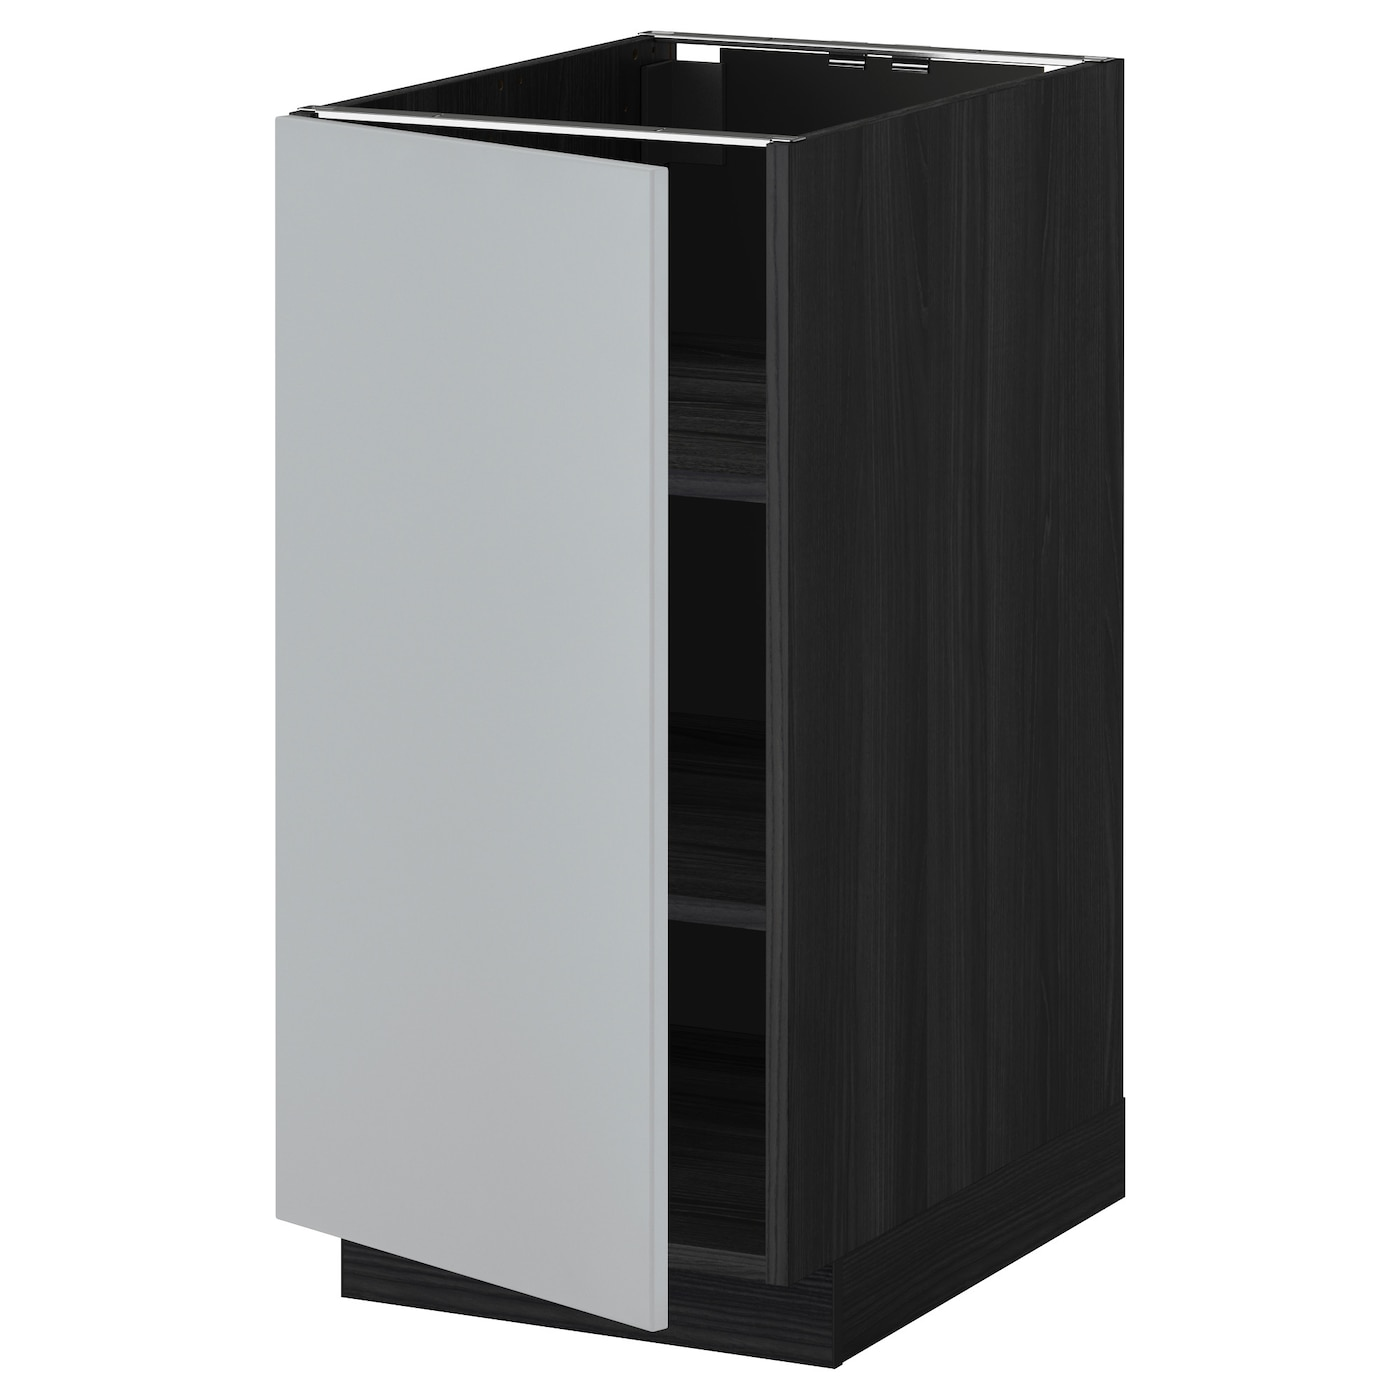 Metod base cabinet with shelves black veddinge grey 40x60 for Base cabinets